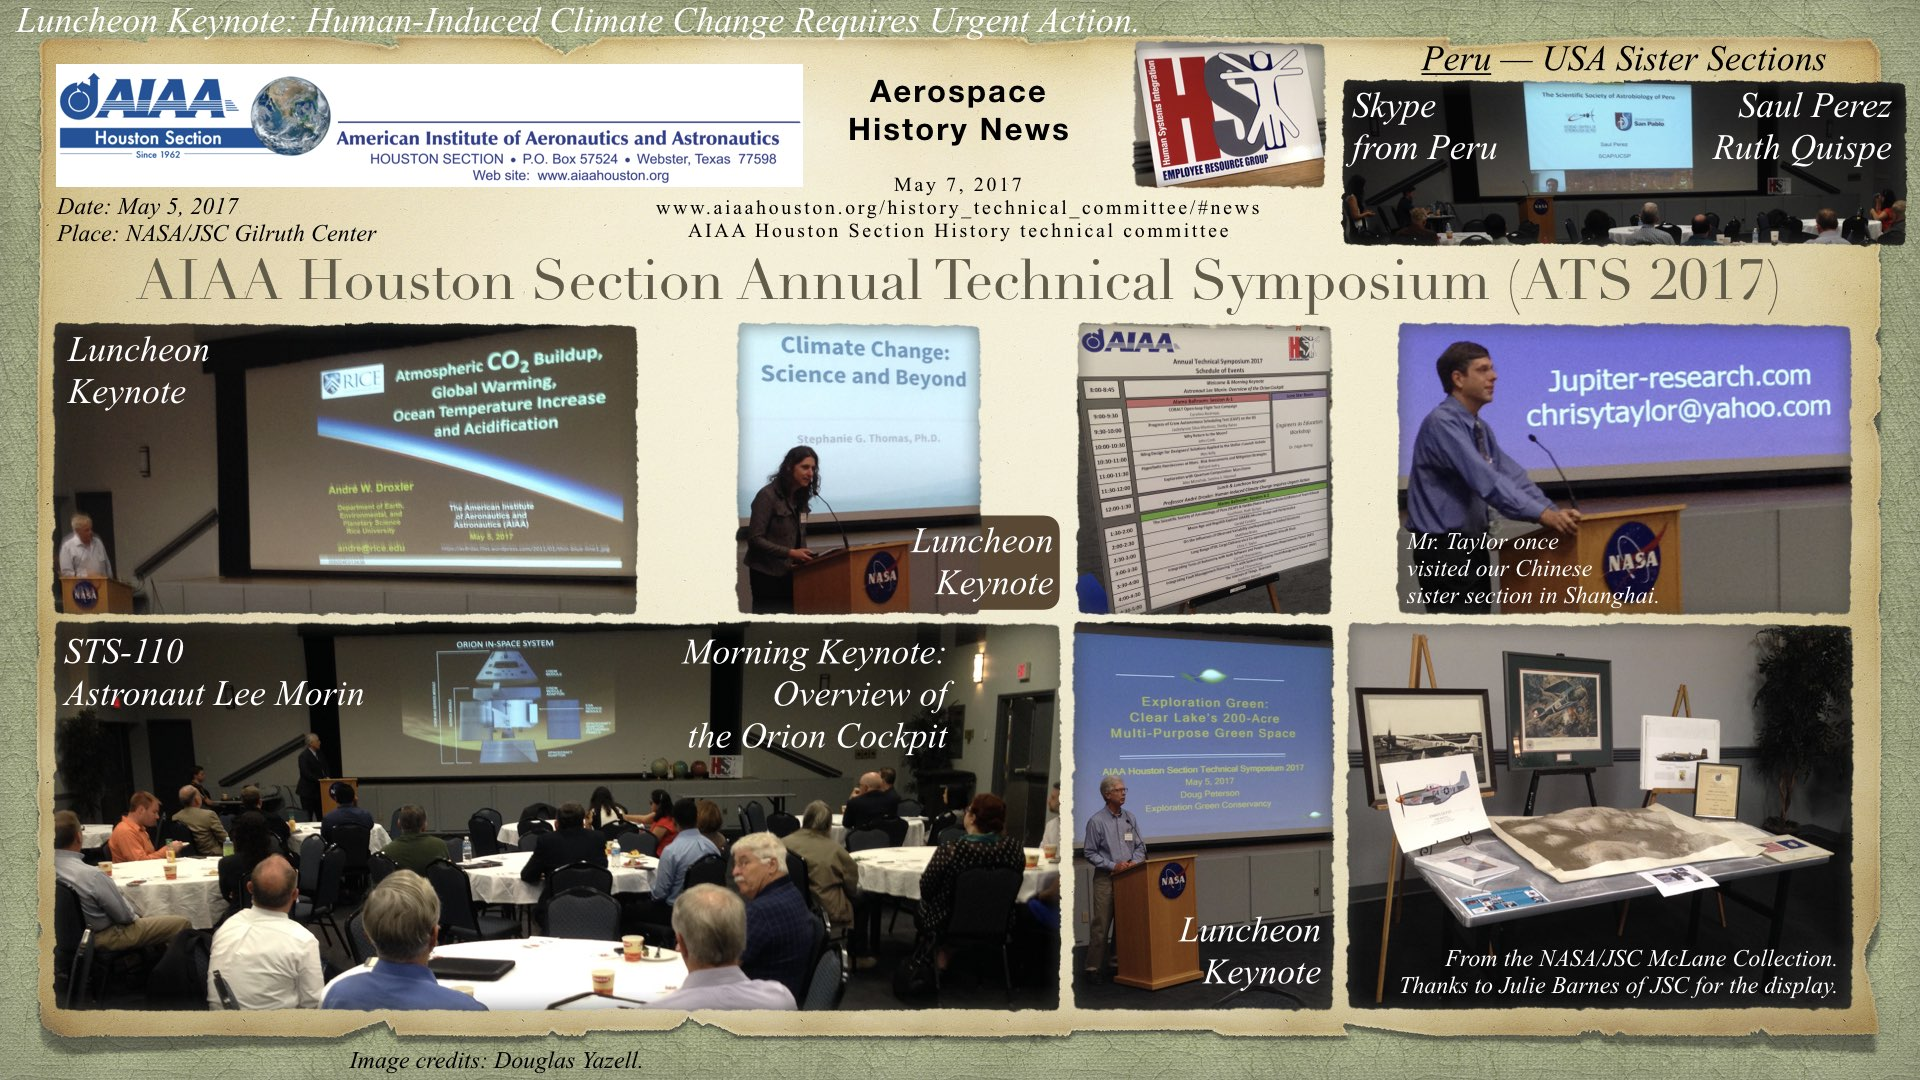 Above: AIAA Houston Section Annual Technical Symposium 2017. (Click to zoom.)